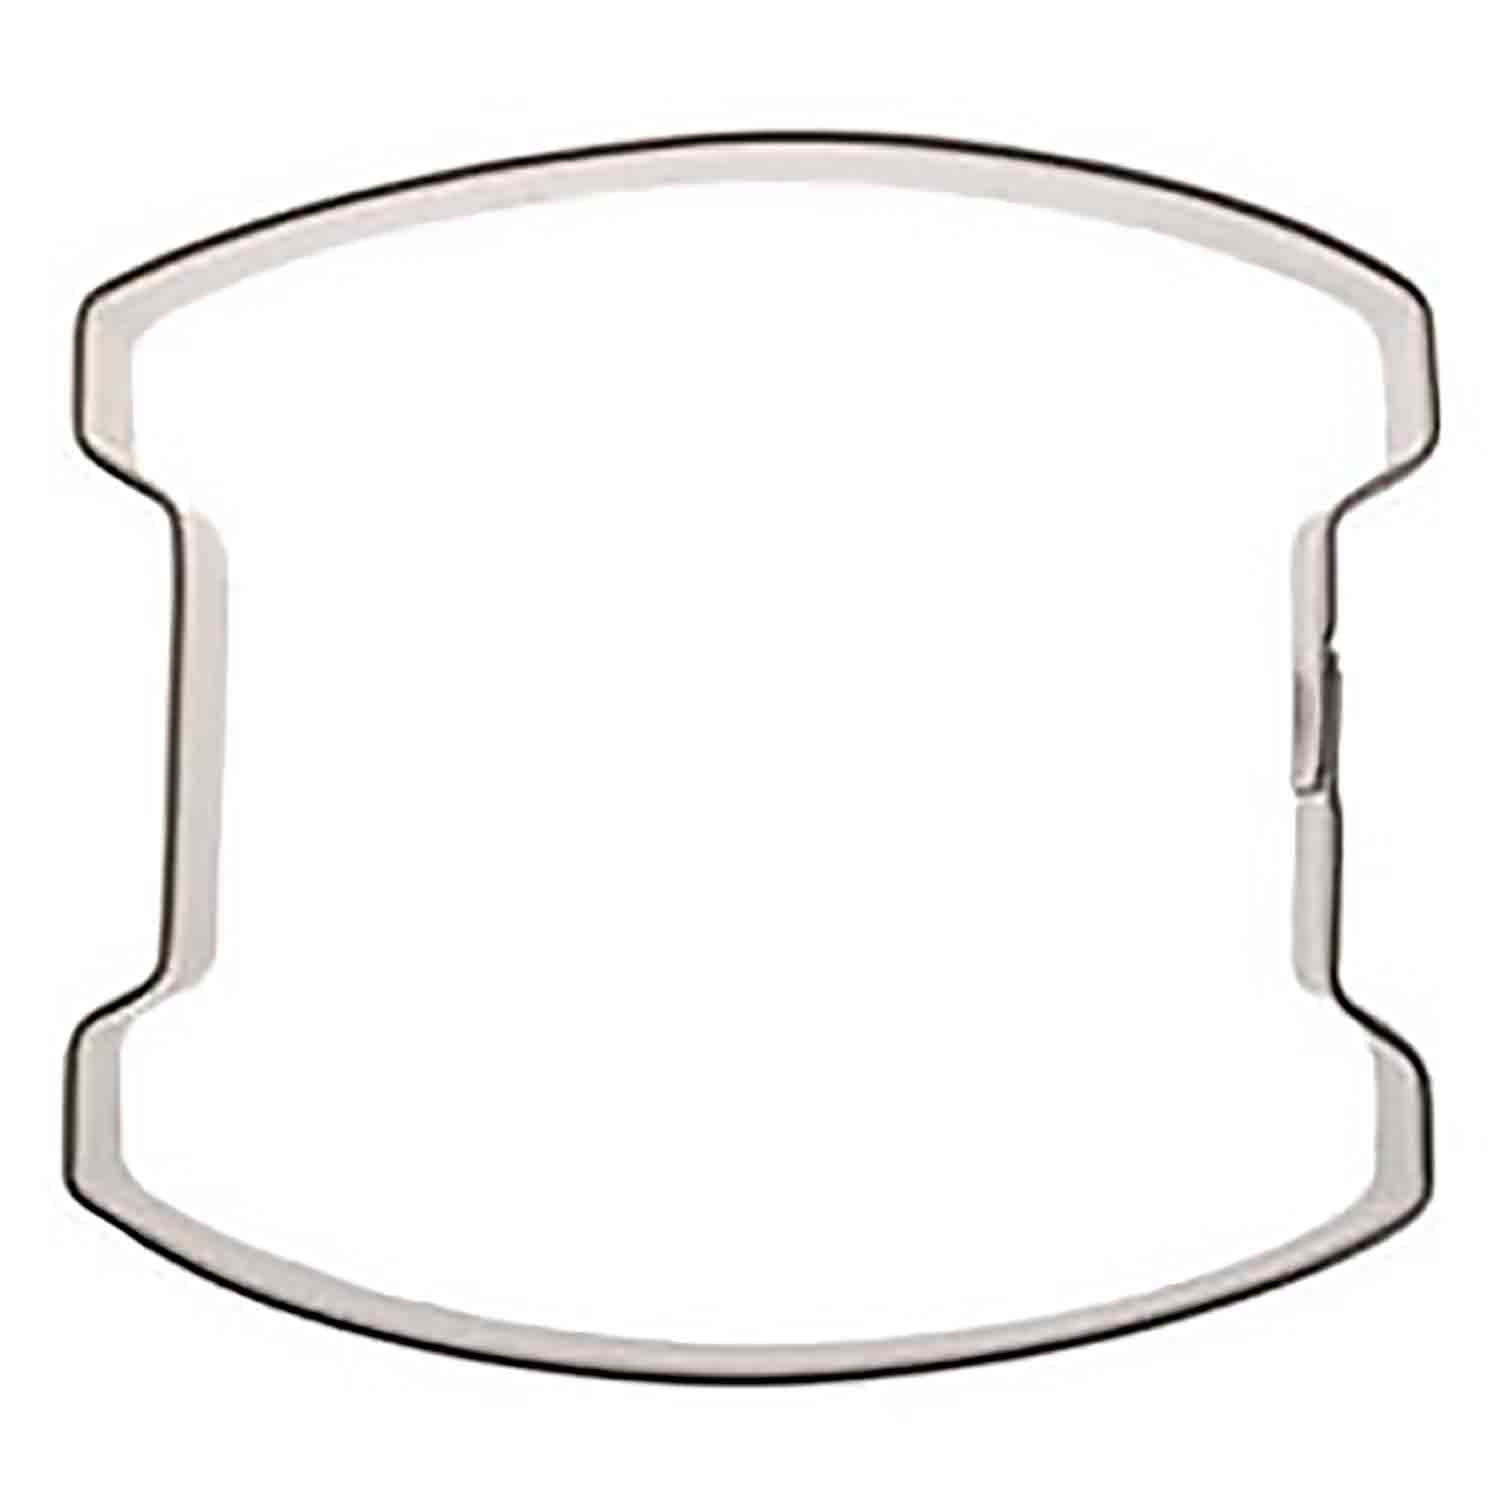 Drum Cookie Cutter